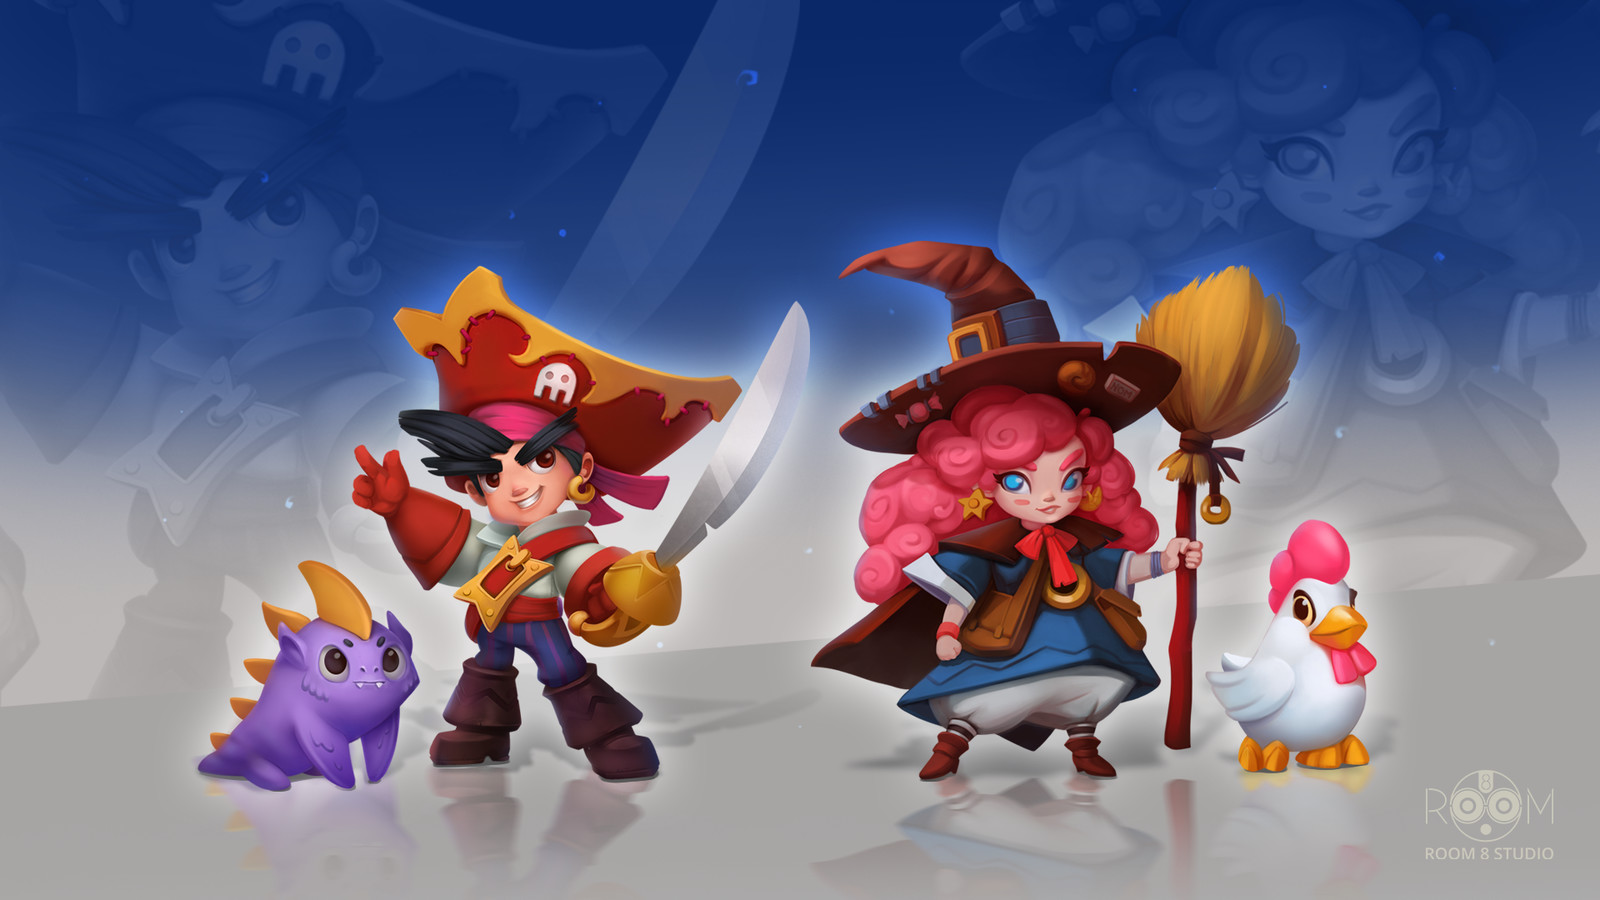 Concept Art of a Cartoony Pirate, Witch and Dangerous Rabbit